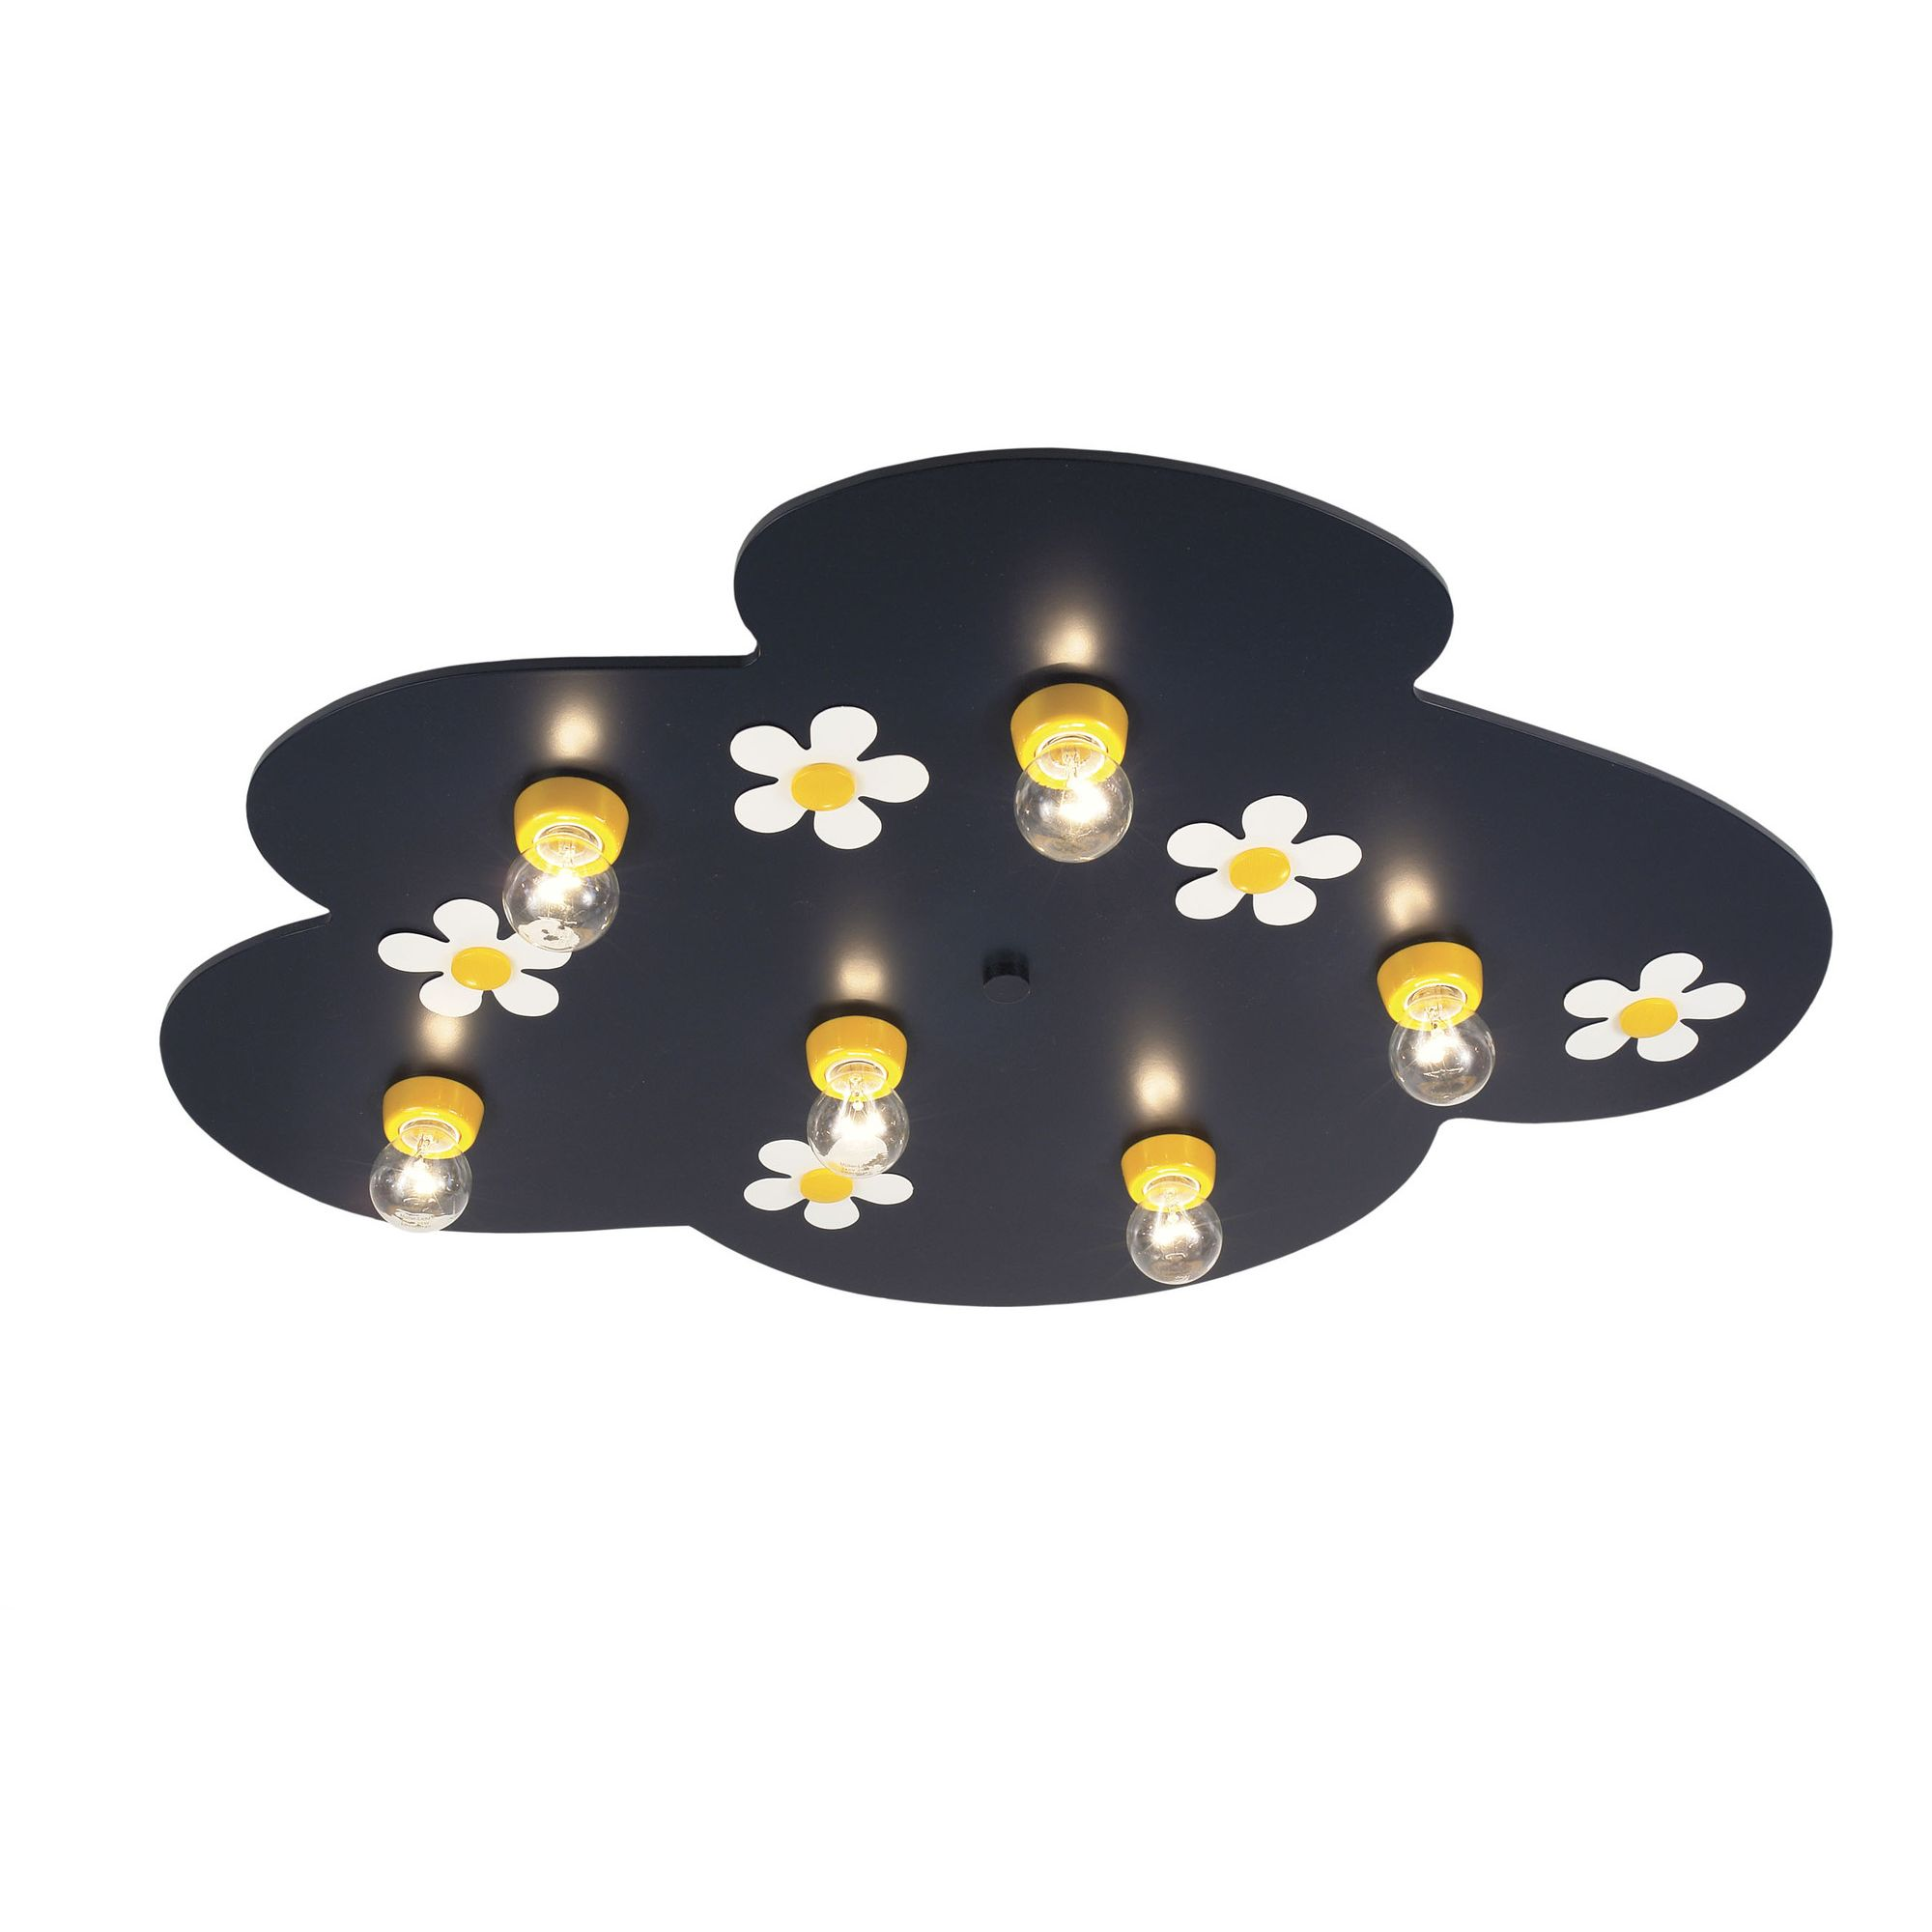 niermann-standby-flower-power-ceiling-light